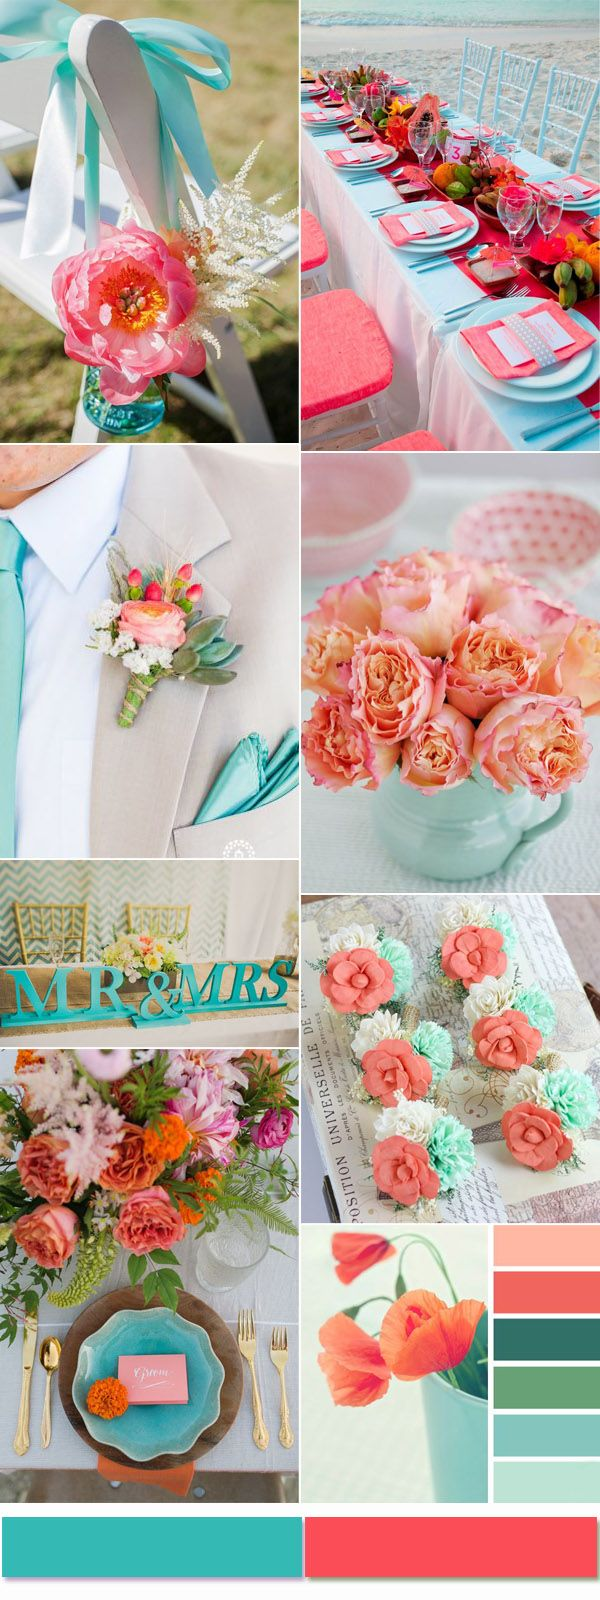 Colors Mood best 25+ wedding colors ideas on pinterest | fall wedding colors